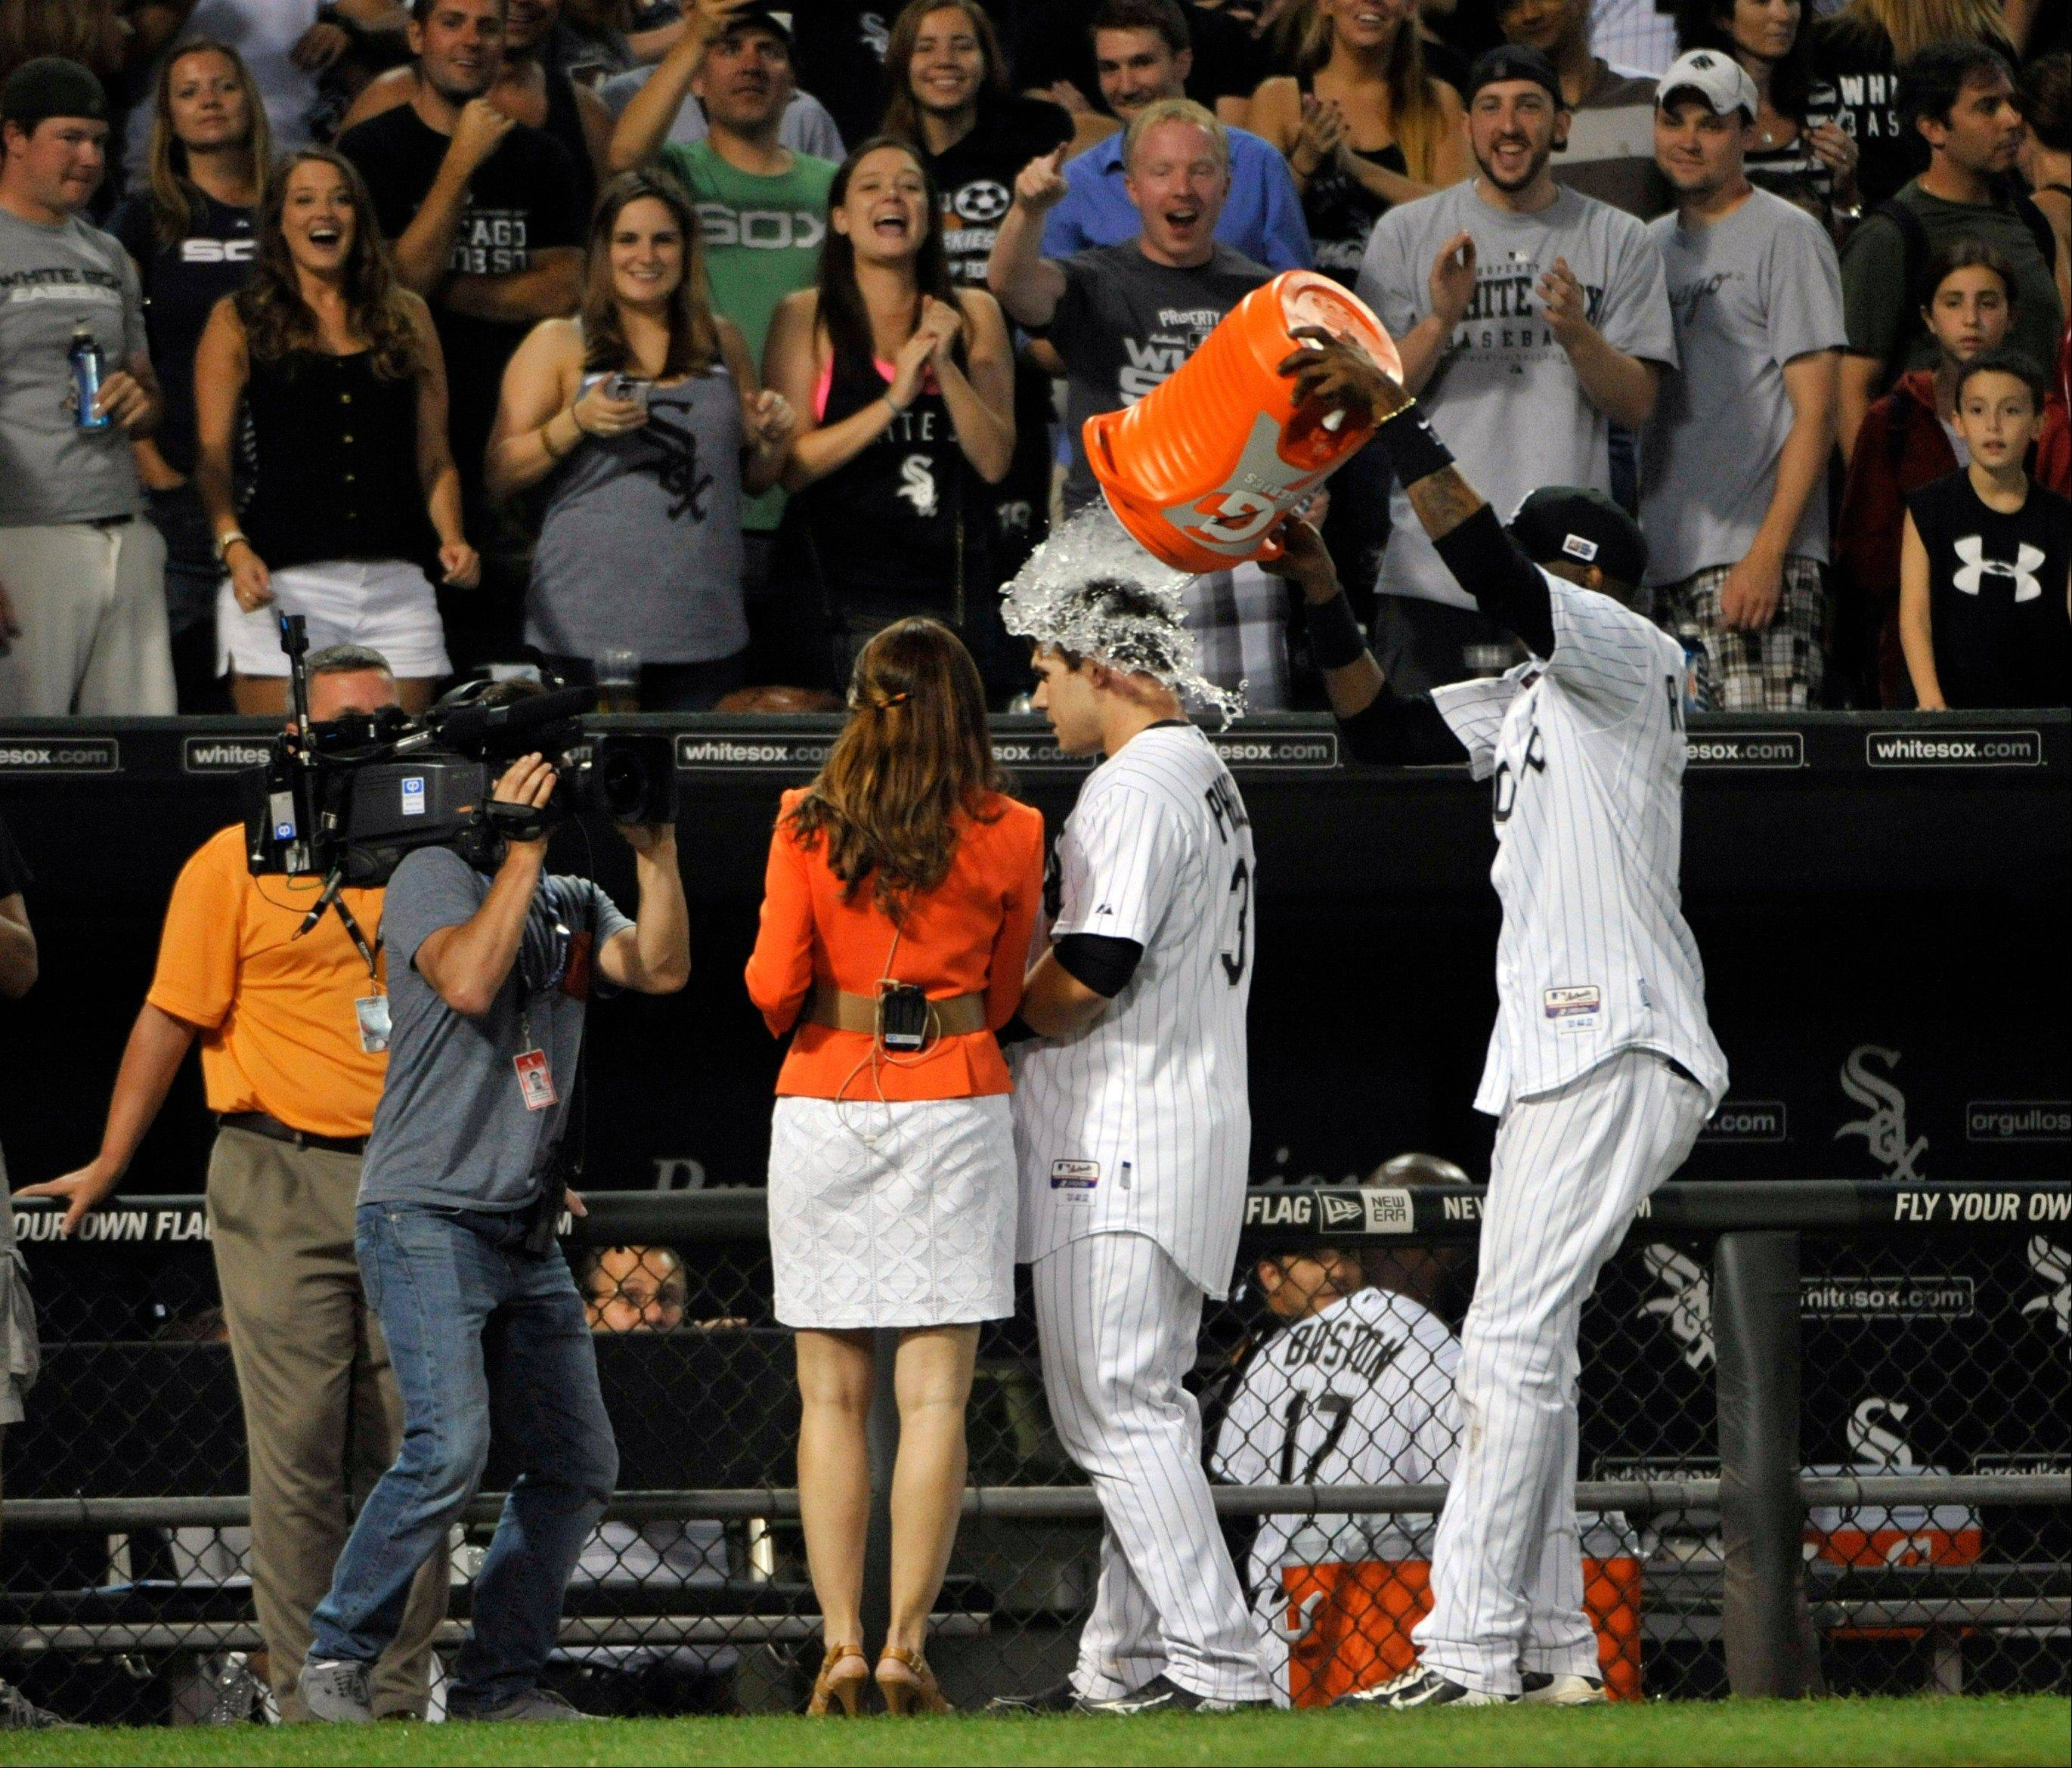 After his game-winning hit Saturday against the Rangers, the White Sox' Josh Phegley gets a Gatorade bath from Alexei Ramirez during a postgame interview at U.S. Cellular Field.